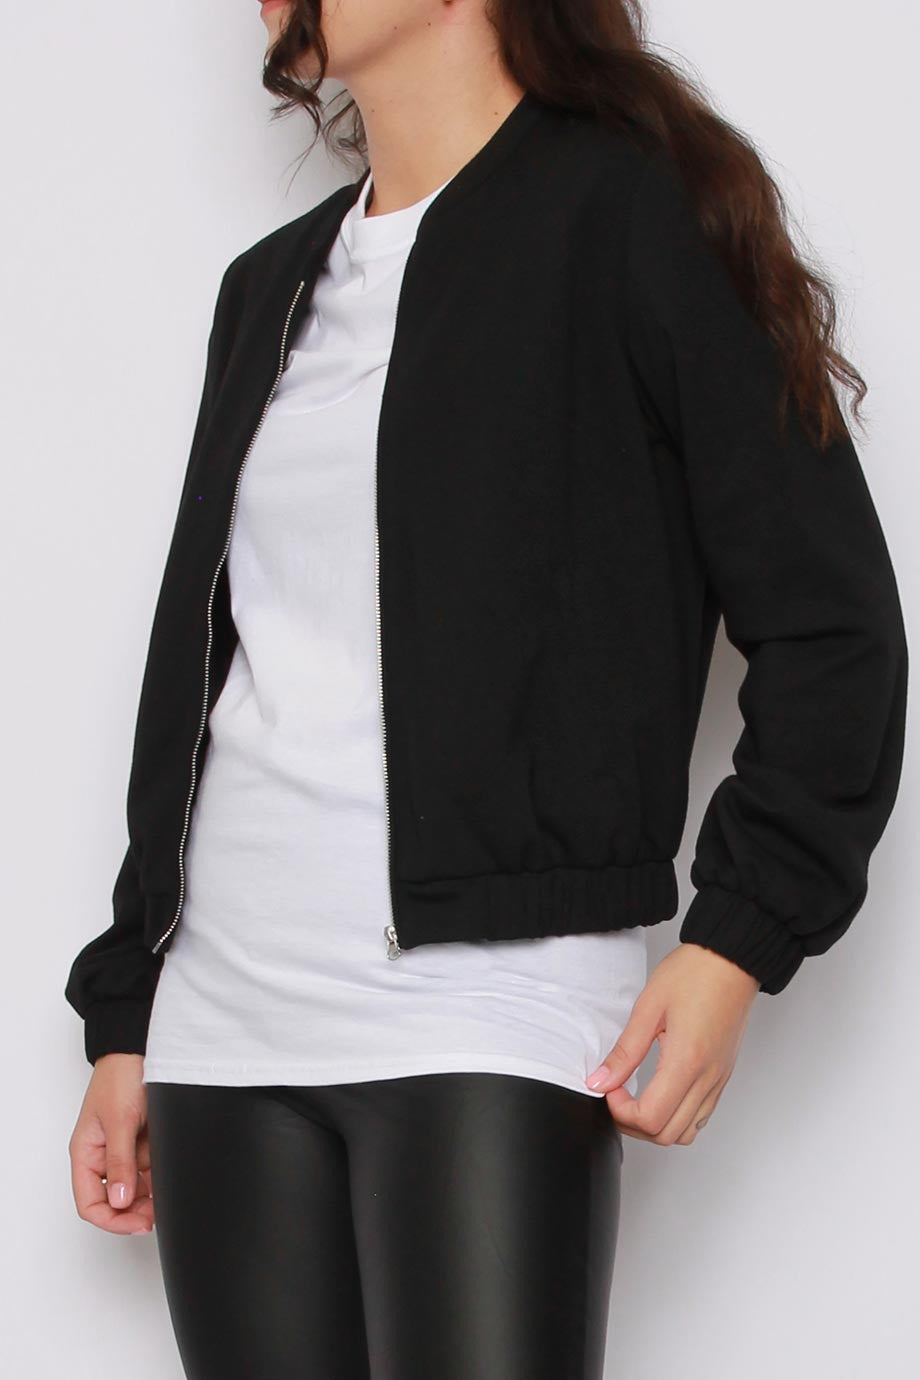 Lota Bomber Jacket | Black Bomber Jacket - Timeless Springs